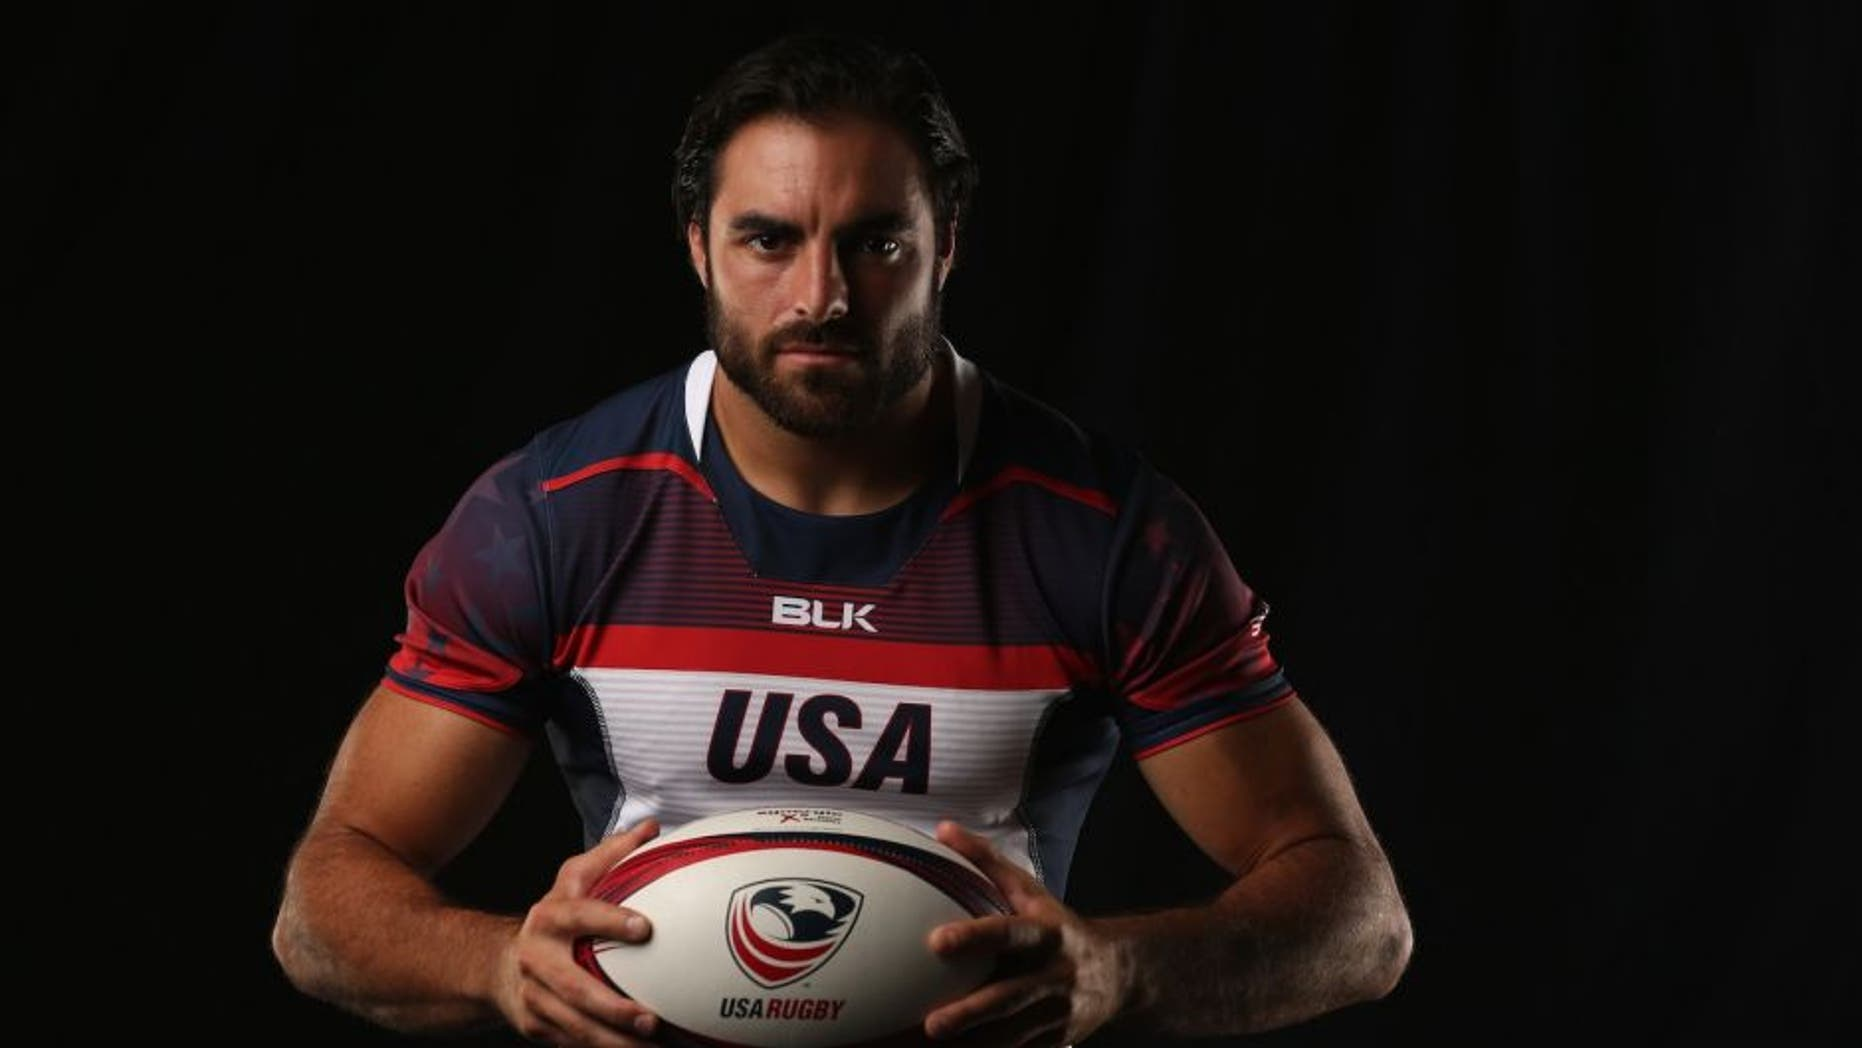 CHULA VISTA, CA - JULY 21: Nate Ebner of the USA Rugby Mens Sevens Team poses for a portrait at the Olympic Training Center on July 21, 2016 in Chula Vista, California. (Photo by Sean M. Haffey/Getty Images)